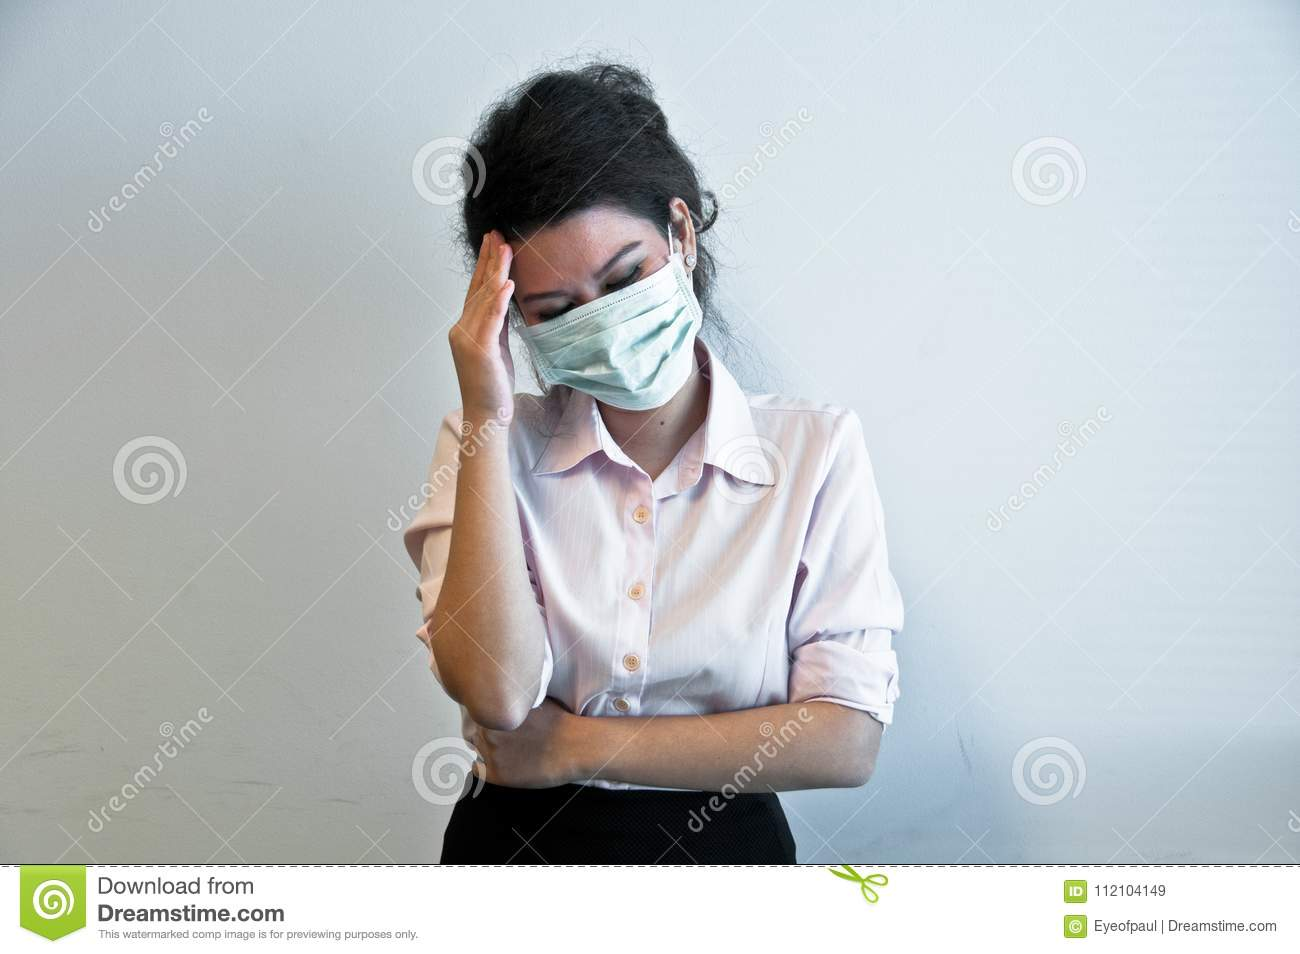 Stock Sick Woman Image - Of Hygiene And Business Mask Wear